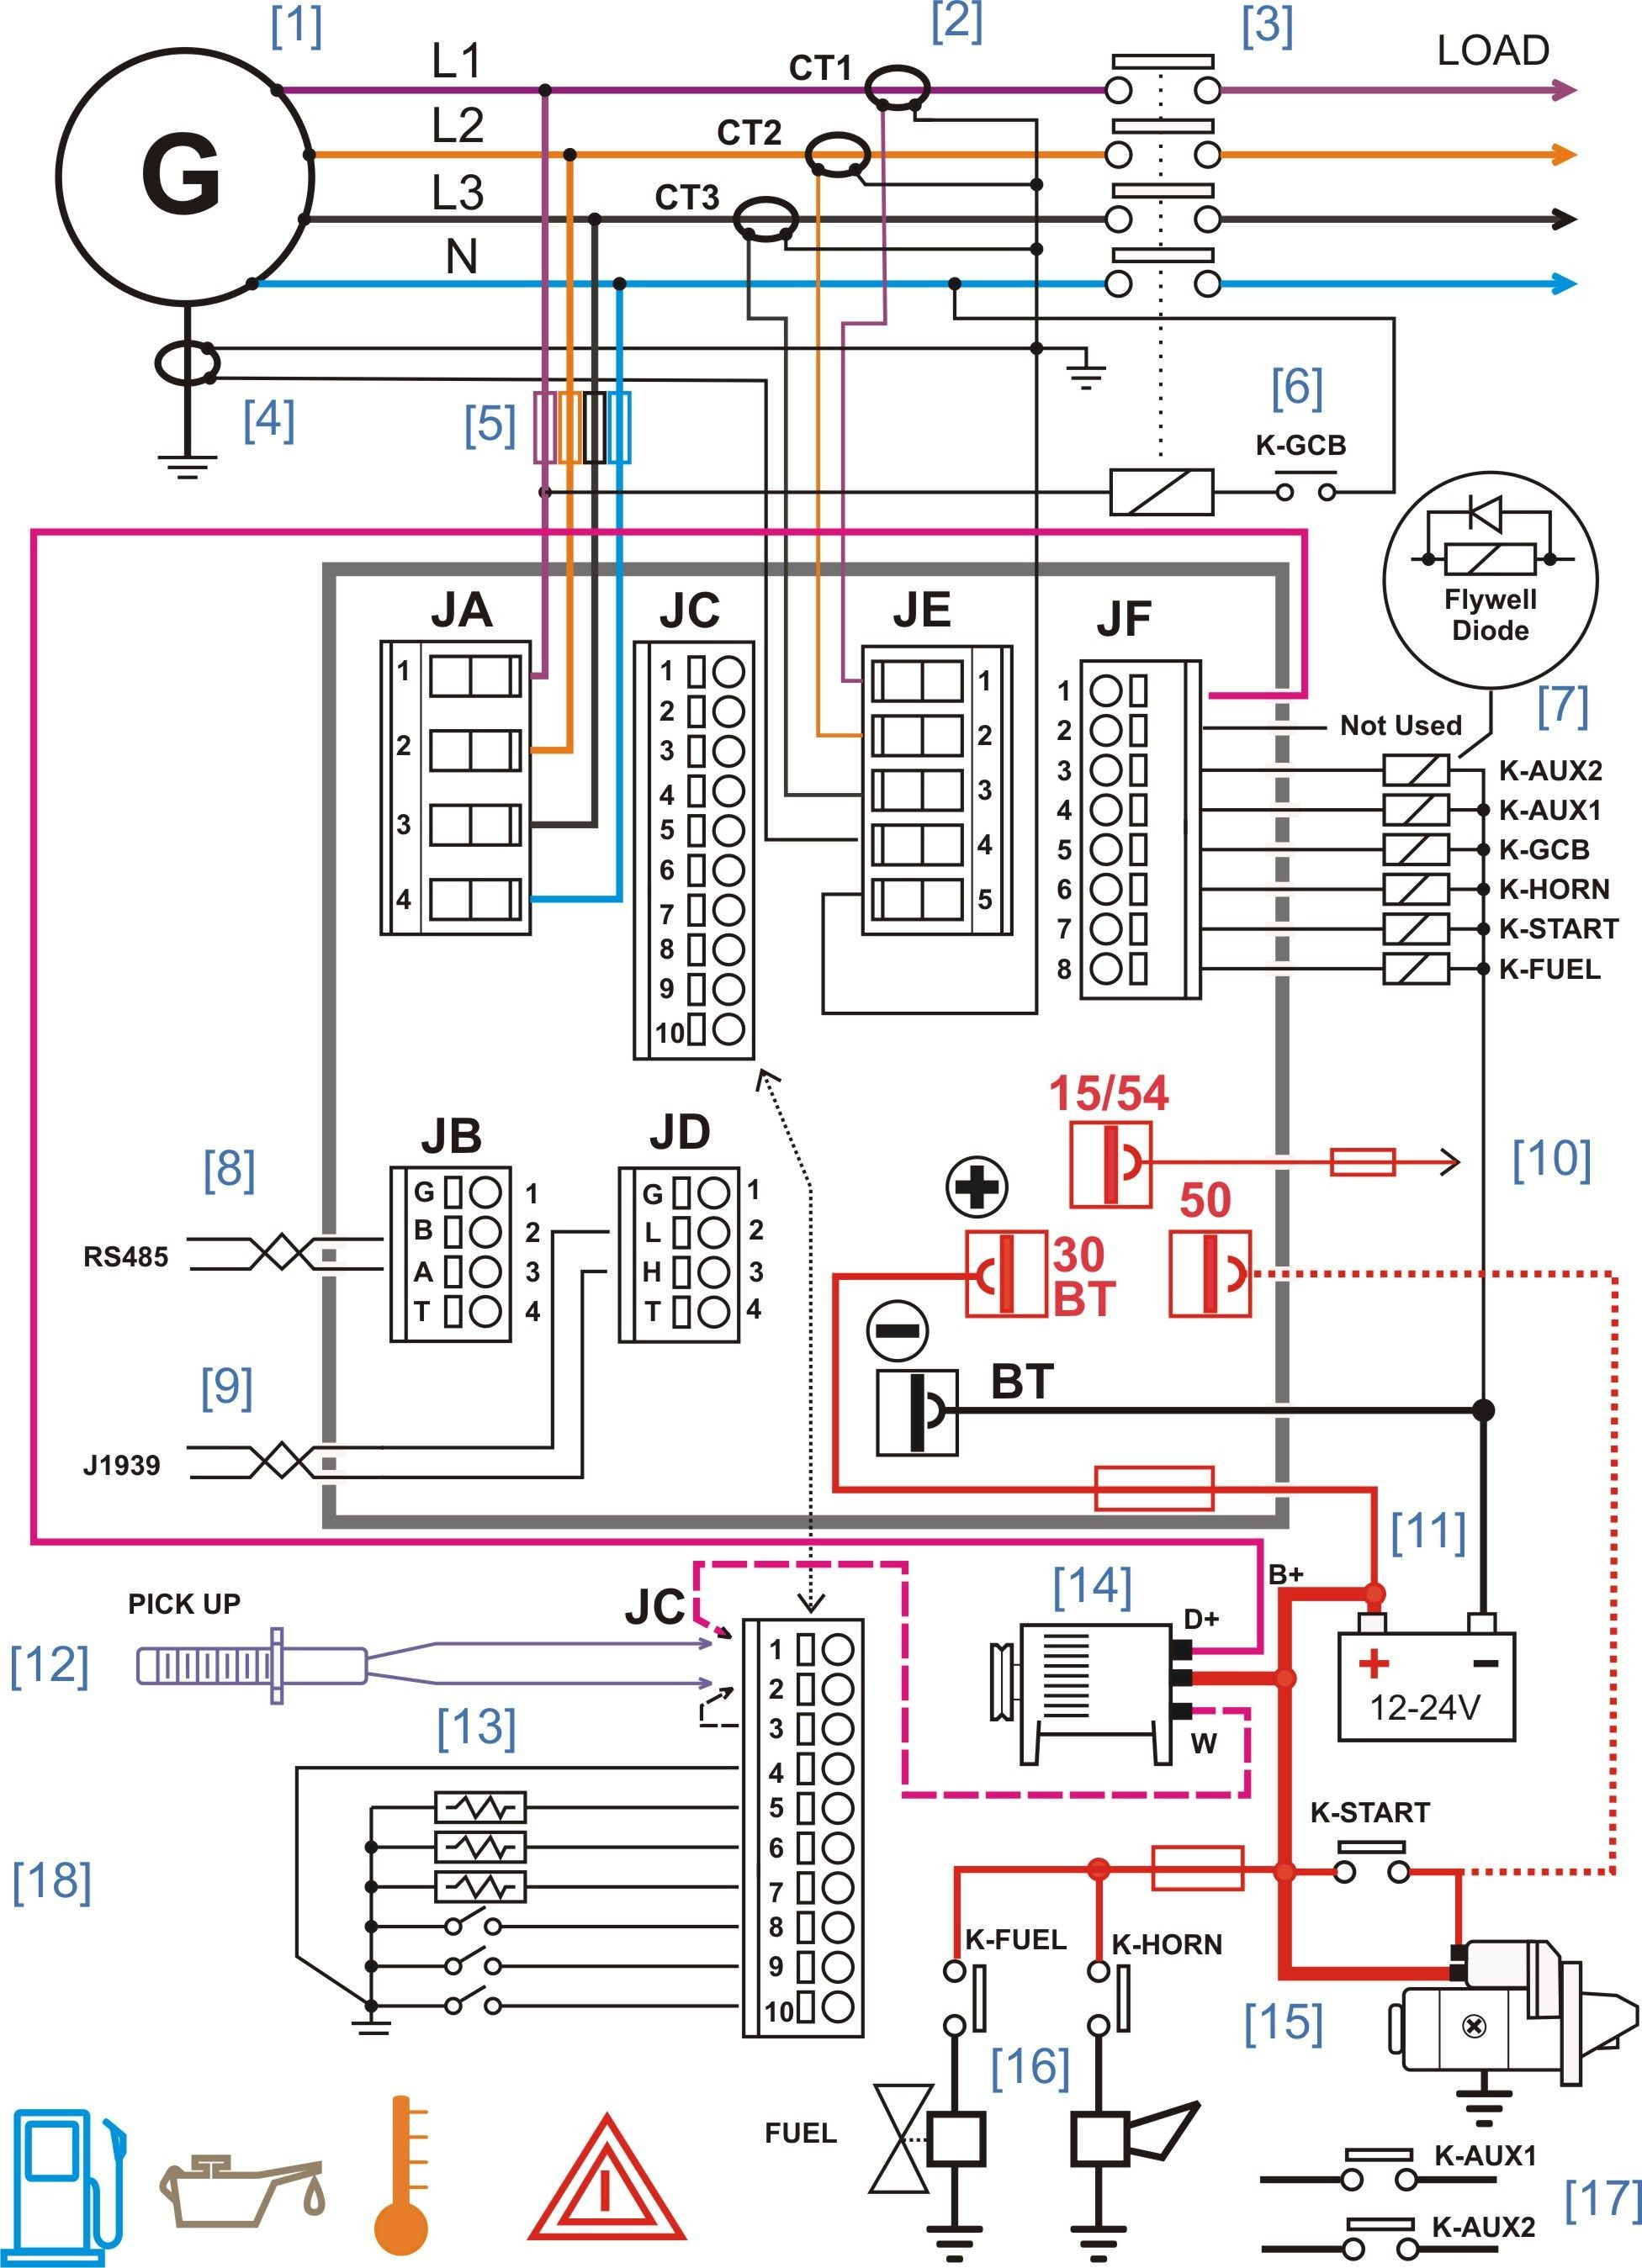 How to Wire A Transfer Switch for A Generator Diagram Diesel Generator Control Panel Wiring Diagram